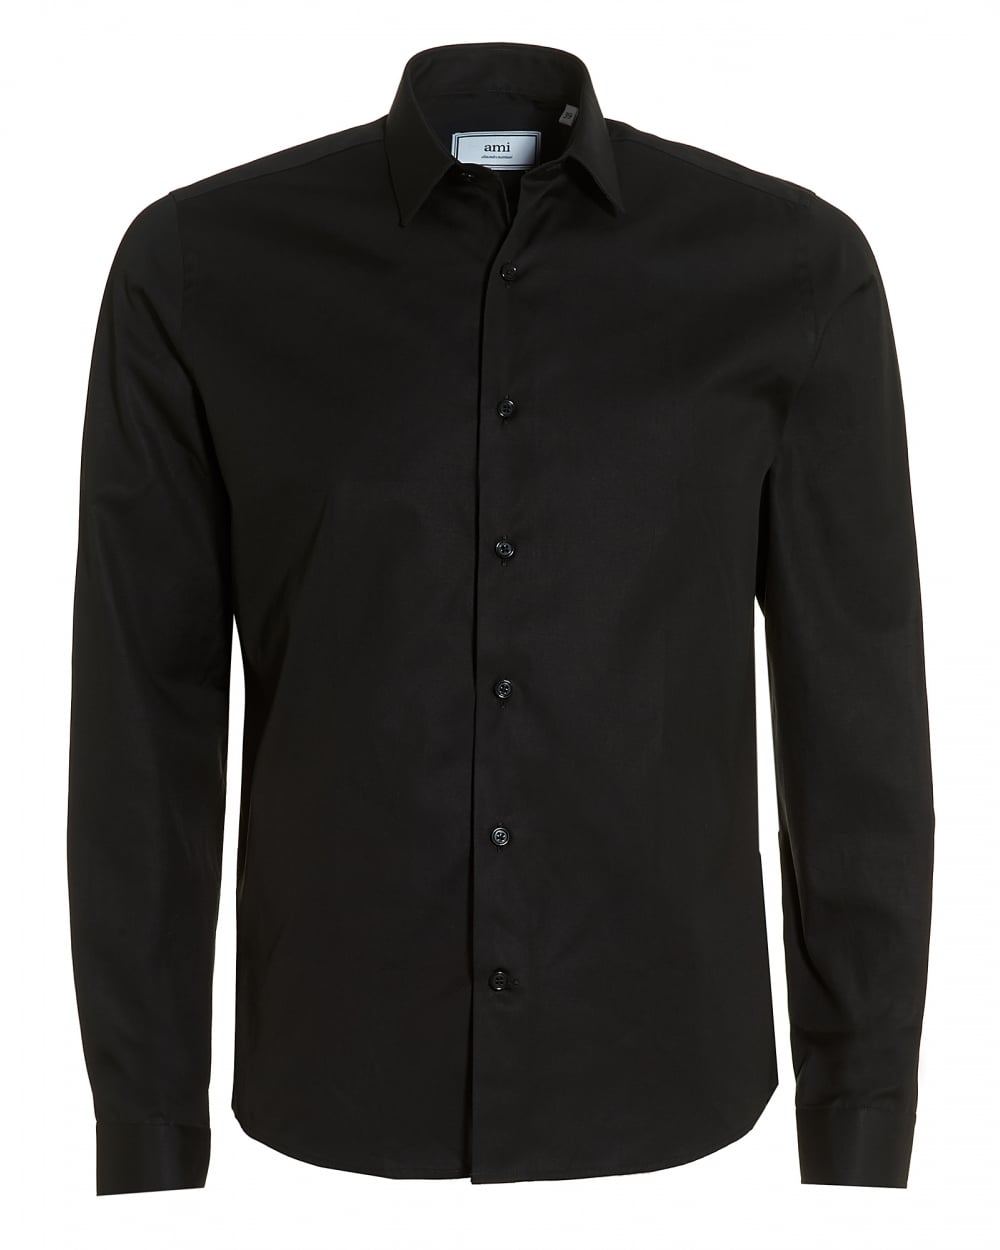 778ffc155315 Mens Plain Black Shirt, Regular Fit Poplin Formal Shirt